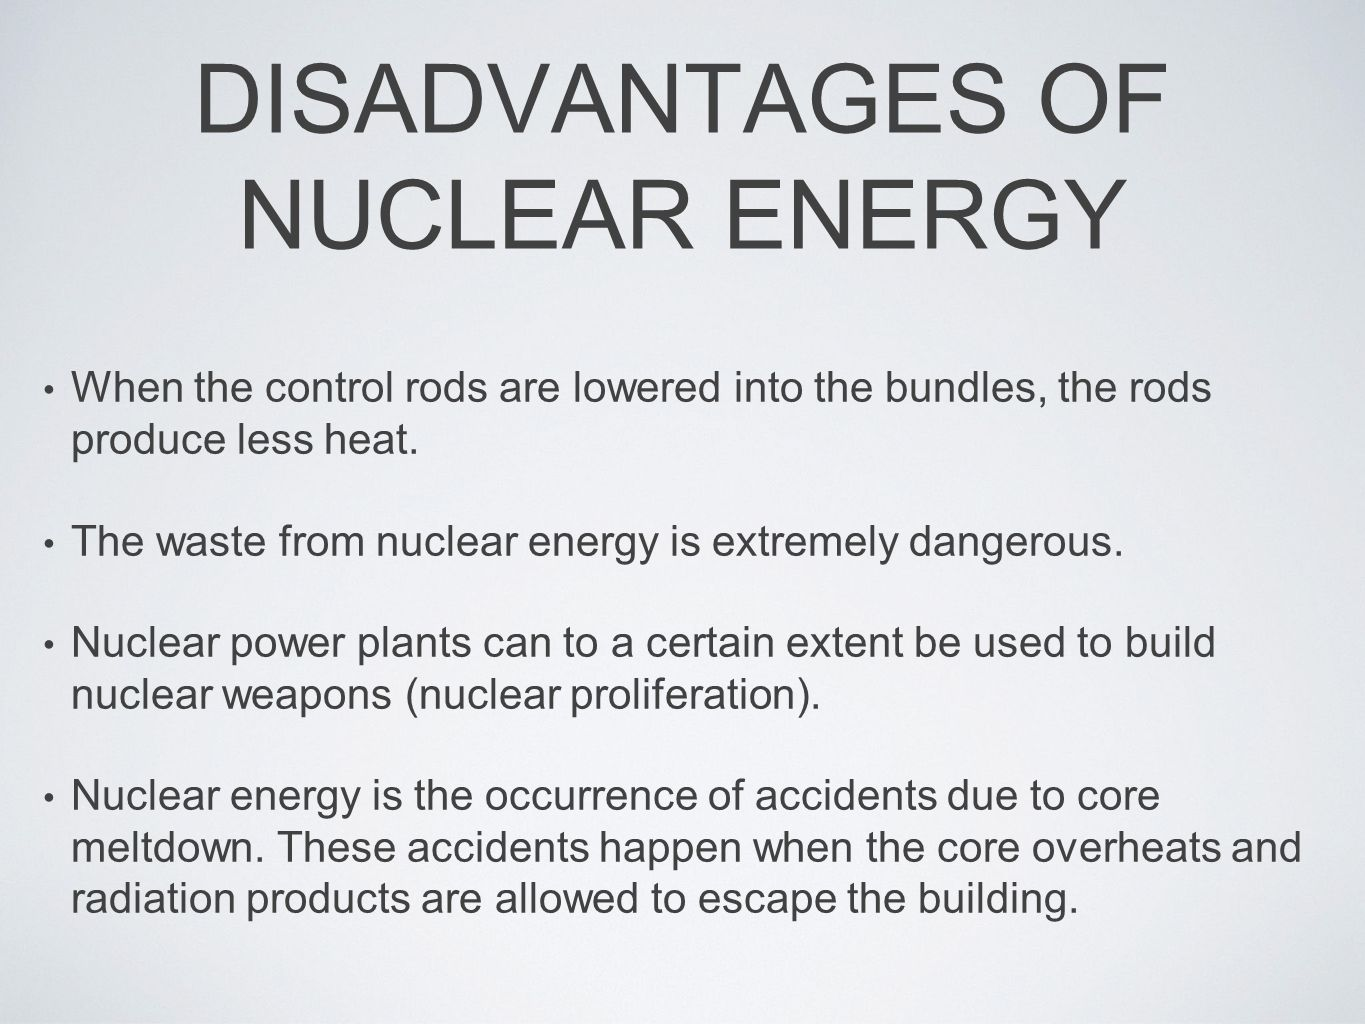 nuclear energy disadvantages essay The threat of nuclear weapons maintains world peace but nuclear power provides cheap and clean energy the benefits of nuclear technology far outweigh the disadvantages.